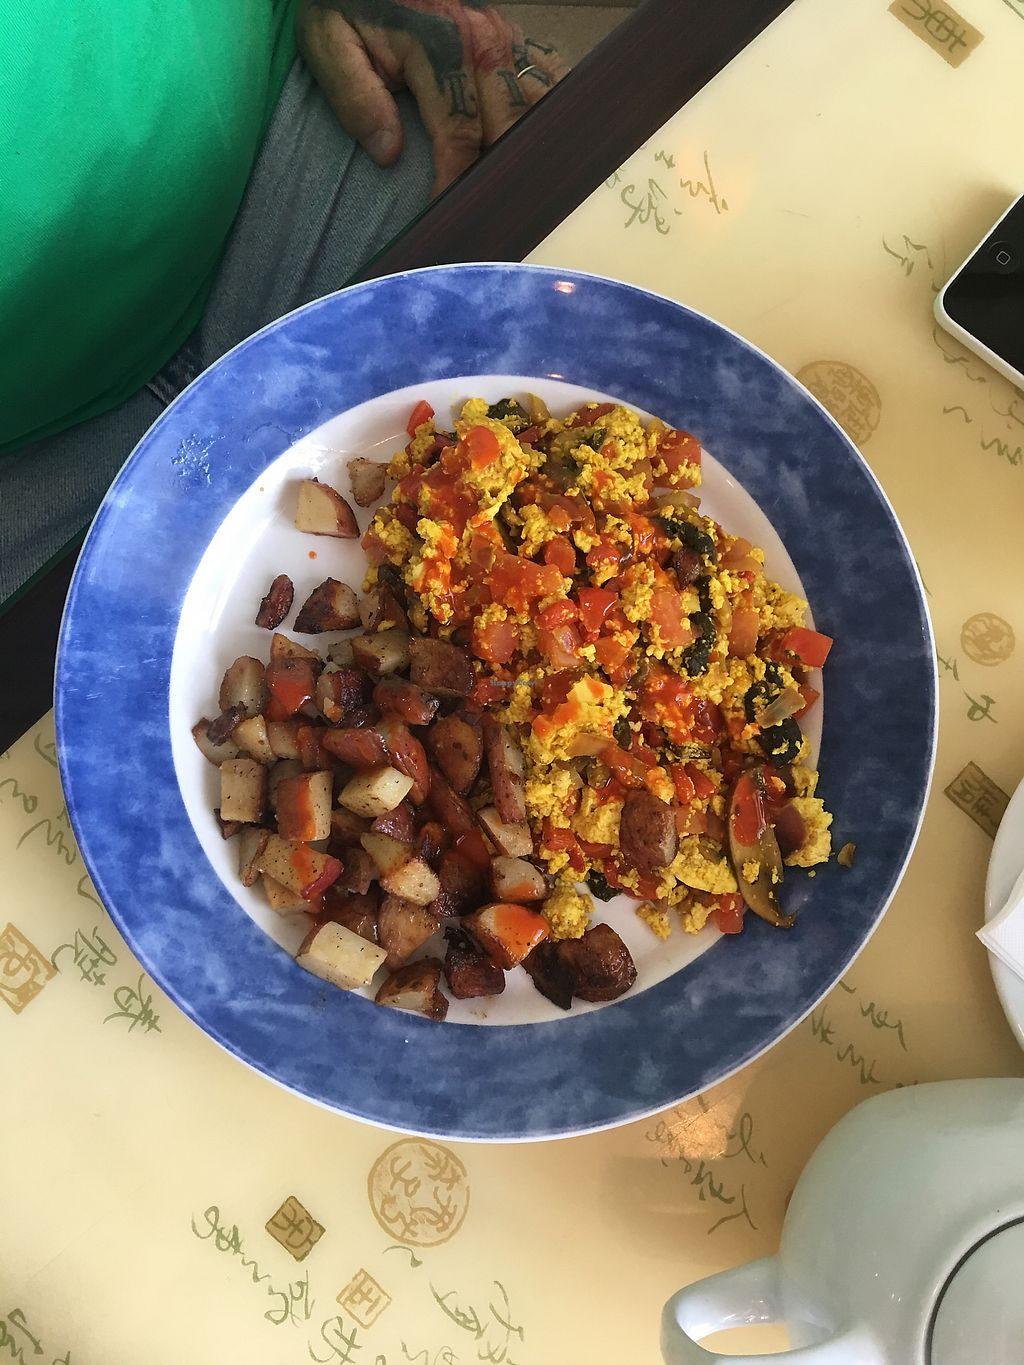 """Photo of Cafe Evergreen  by <a href=""""/members/profile/caittt"""">caittt</a> <br/>Tofu scramble!!!! They were happy to let us customize it <br/> April 15, 2018  - <a href='/contact/abuse/image/45031/386337'>Report</a>"""